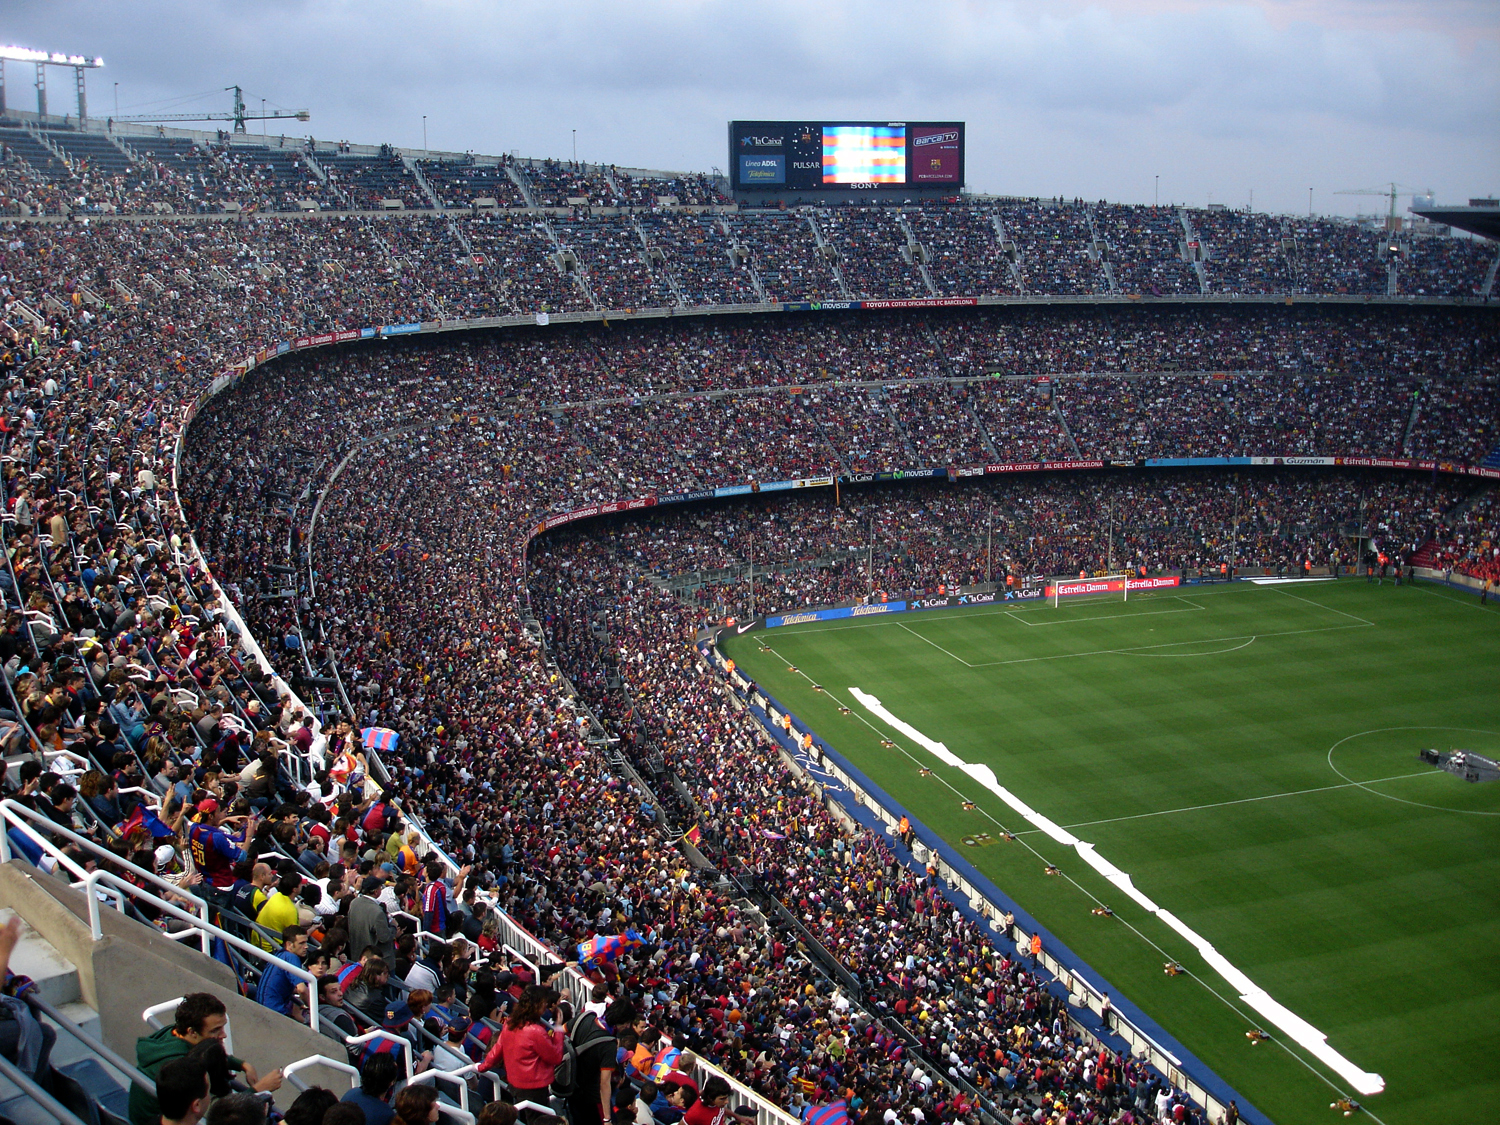 http://upload.wikimedia.org/wikipedia/commons/1/12/Camp_Nou_-_Interior_%282005%29.jpg